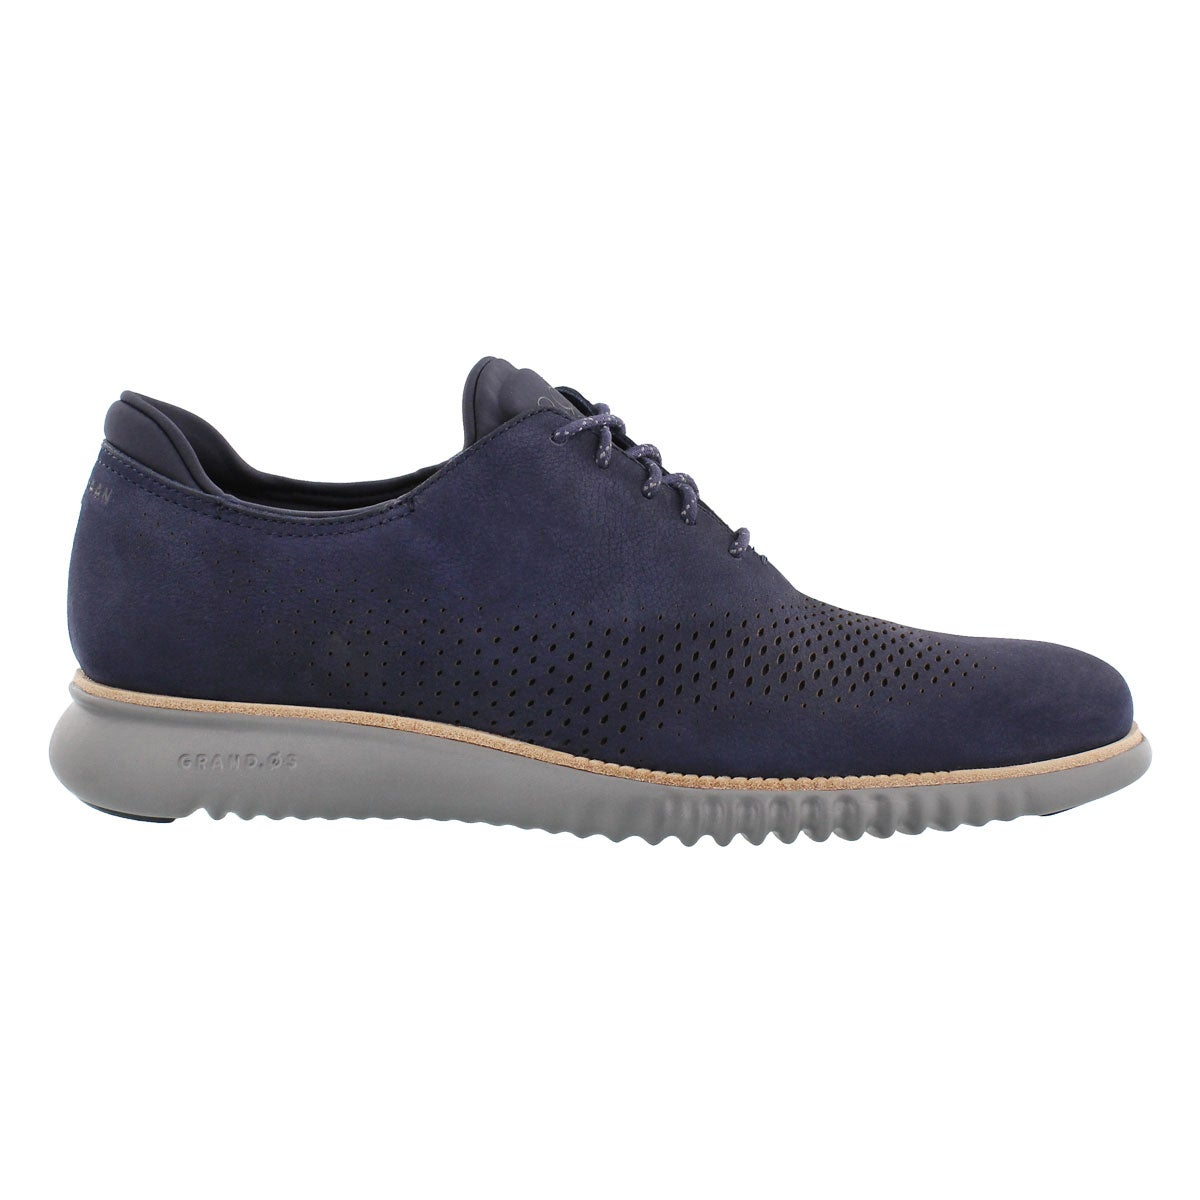 Mns Grand Laser Wing blue casual oxford